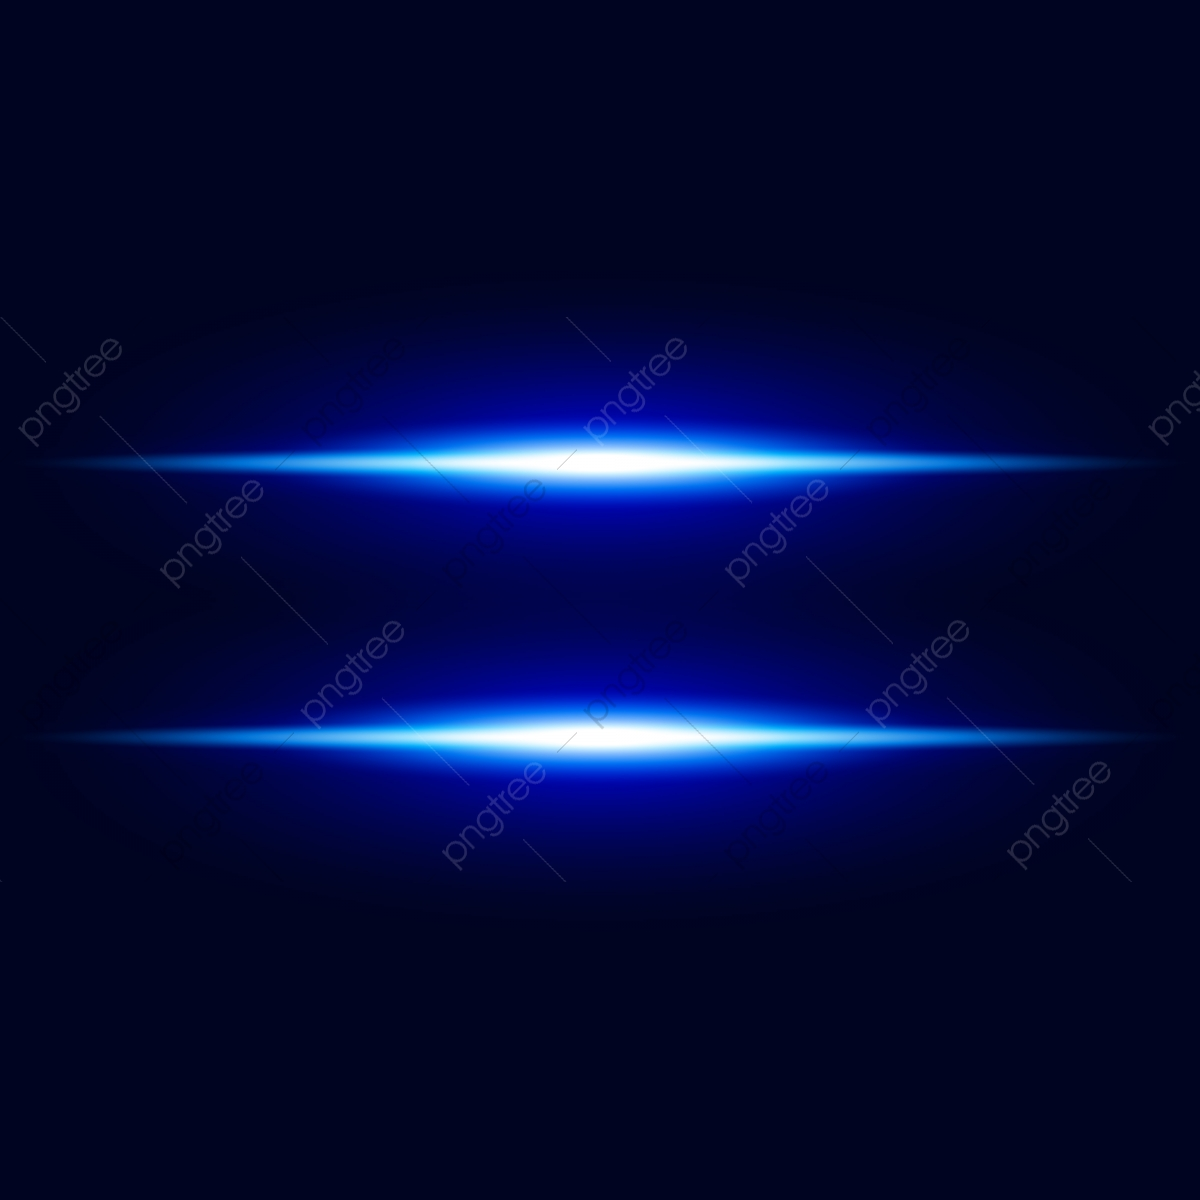 Abstract Blue Light Effect With Shine Bright Vector Background.